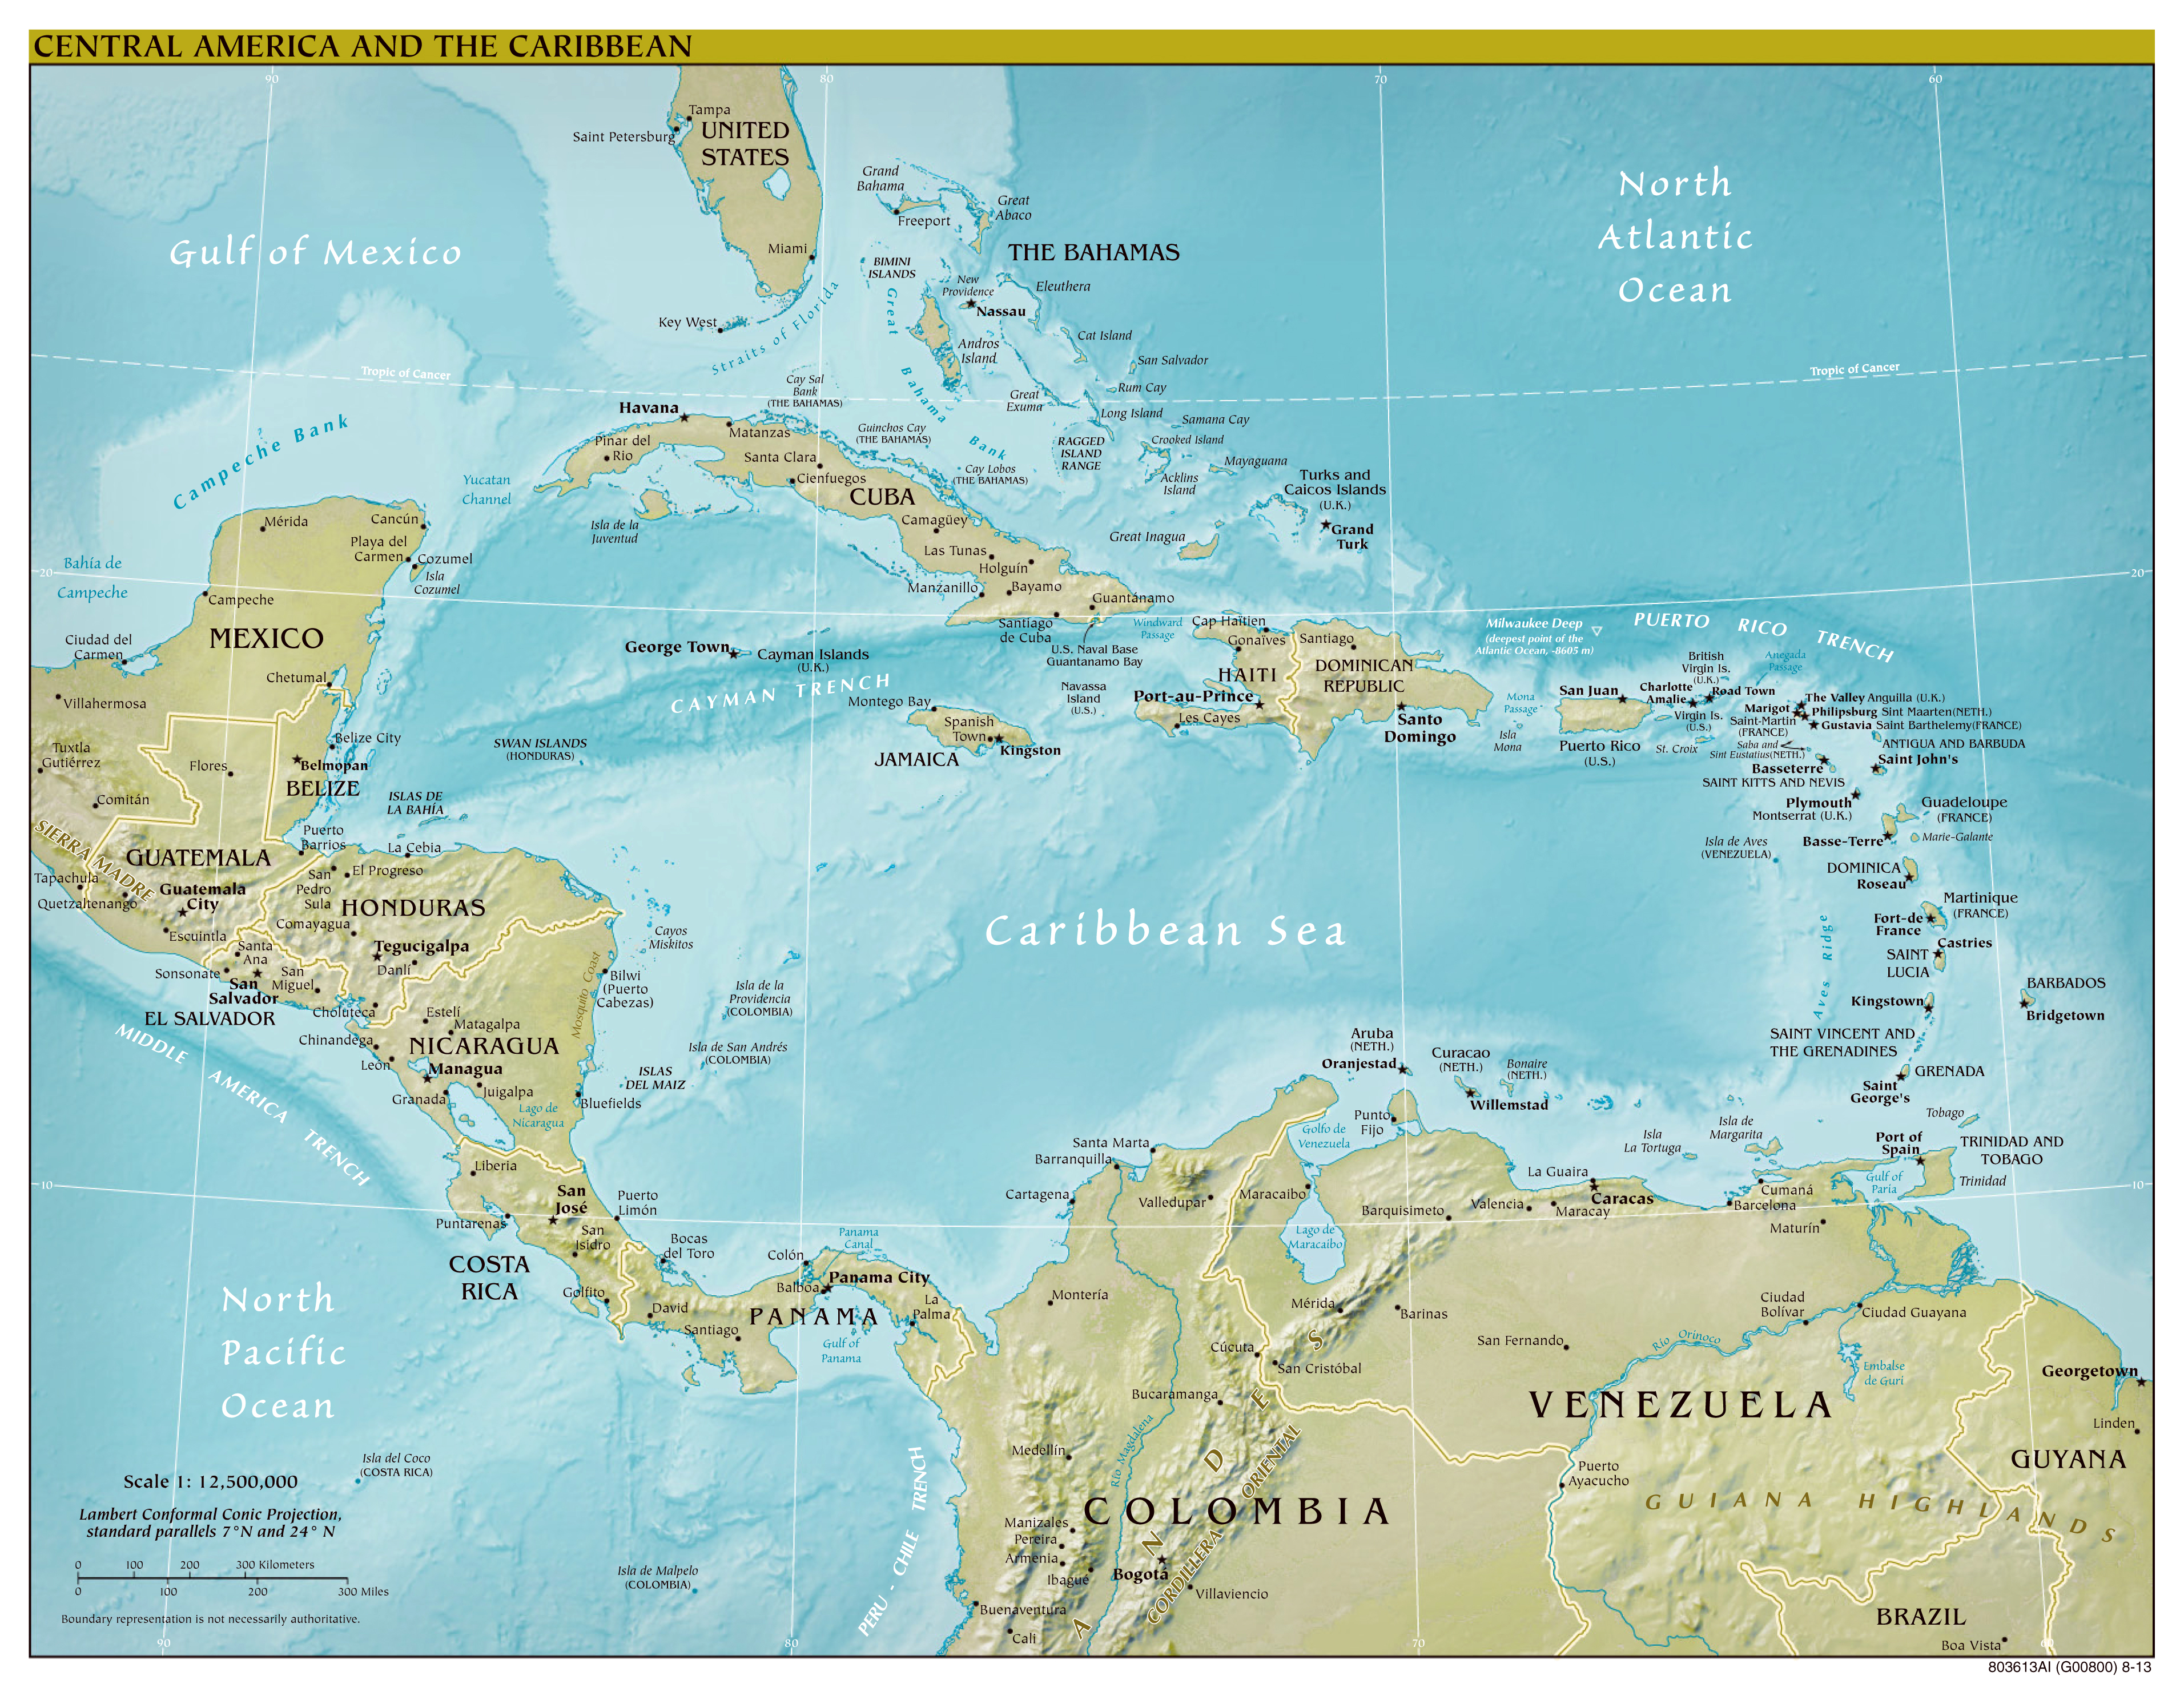 Large scale political map of Central America with relief major